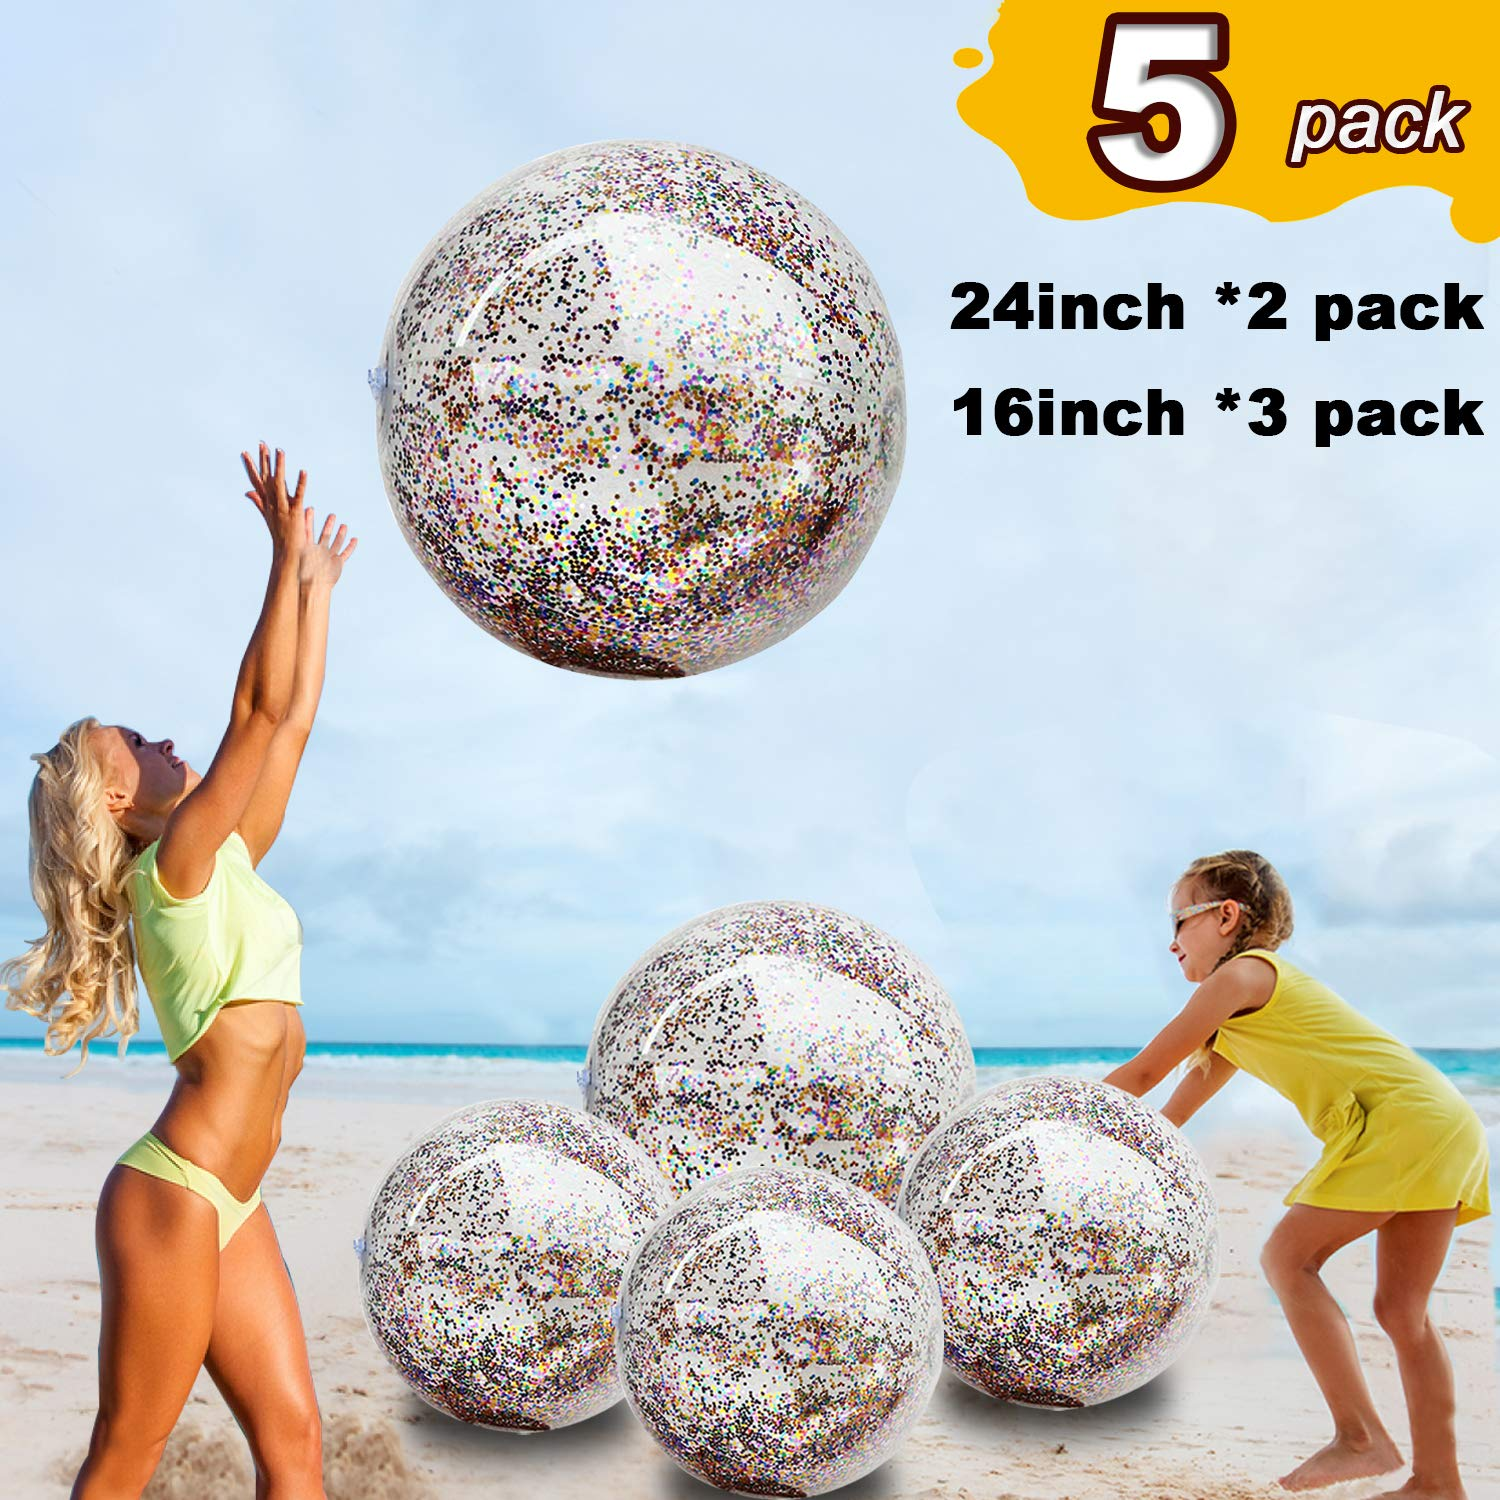 5 Pack Sequin Beach Ball Jumbo Pool Toys Balls Giant Confetti Glitter Inflatable Clear Beach Ball Swimming Pool Water Fun Toys Outdoor Summer Party Favors for Kids Adults (24''-2 Pieces,16''-3 Pieces) by TURNMEON